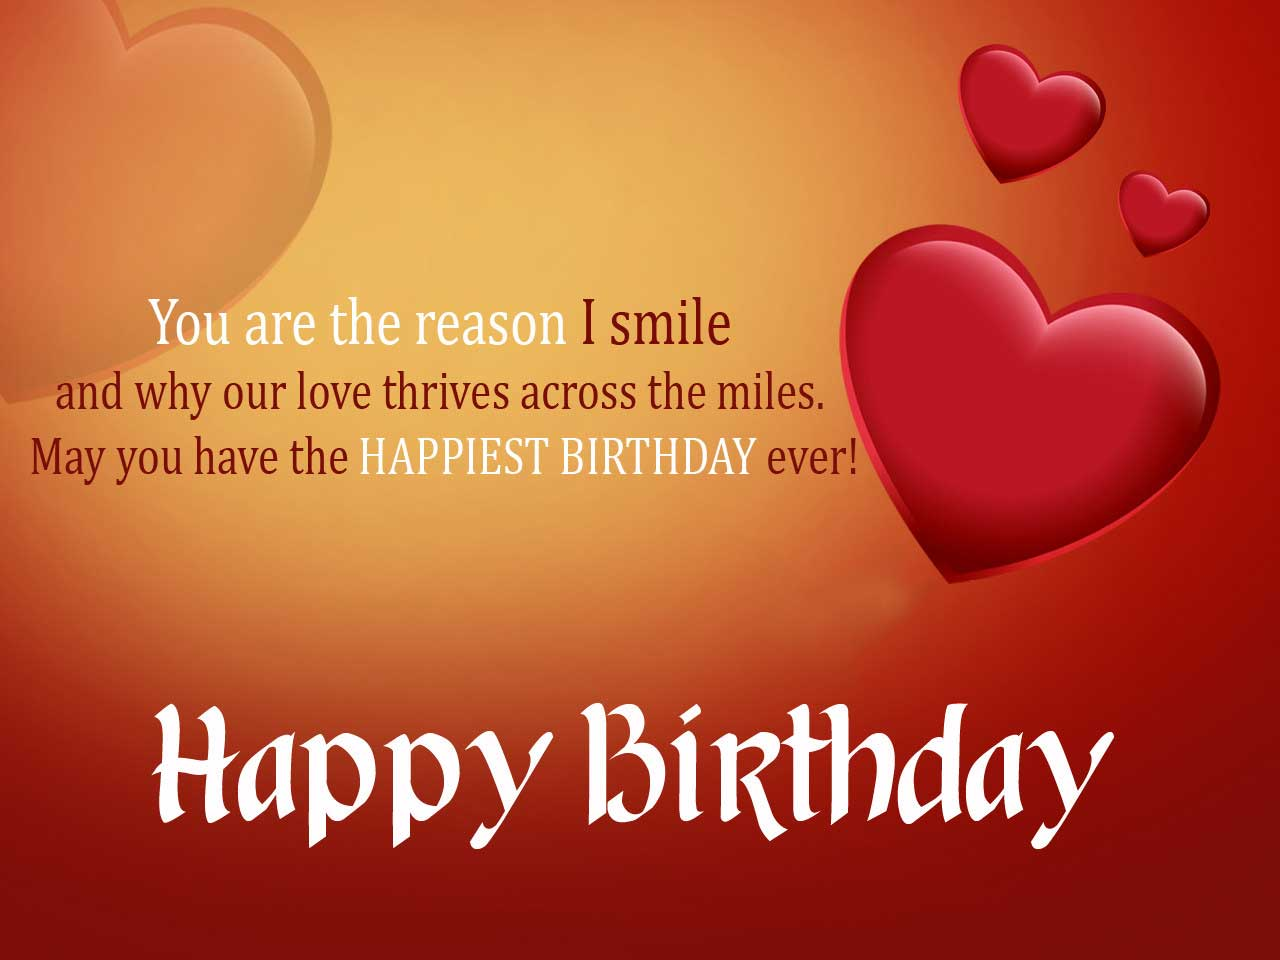 birthday wishes images for lover ; 84386b492f652fda27b1d317fcad5130